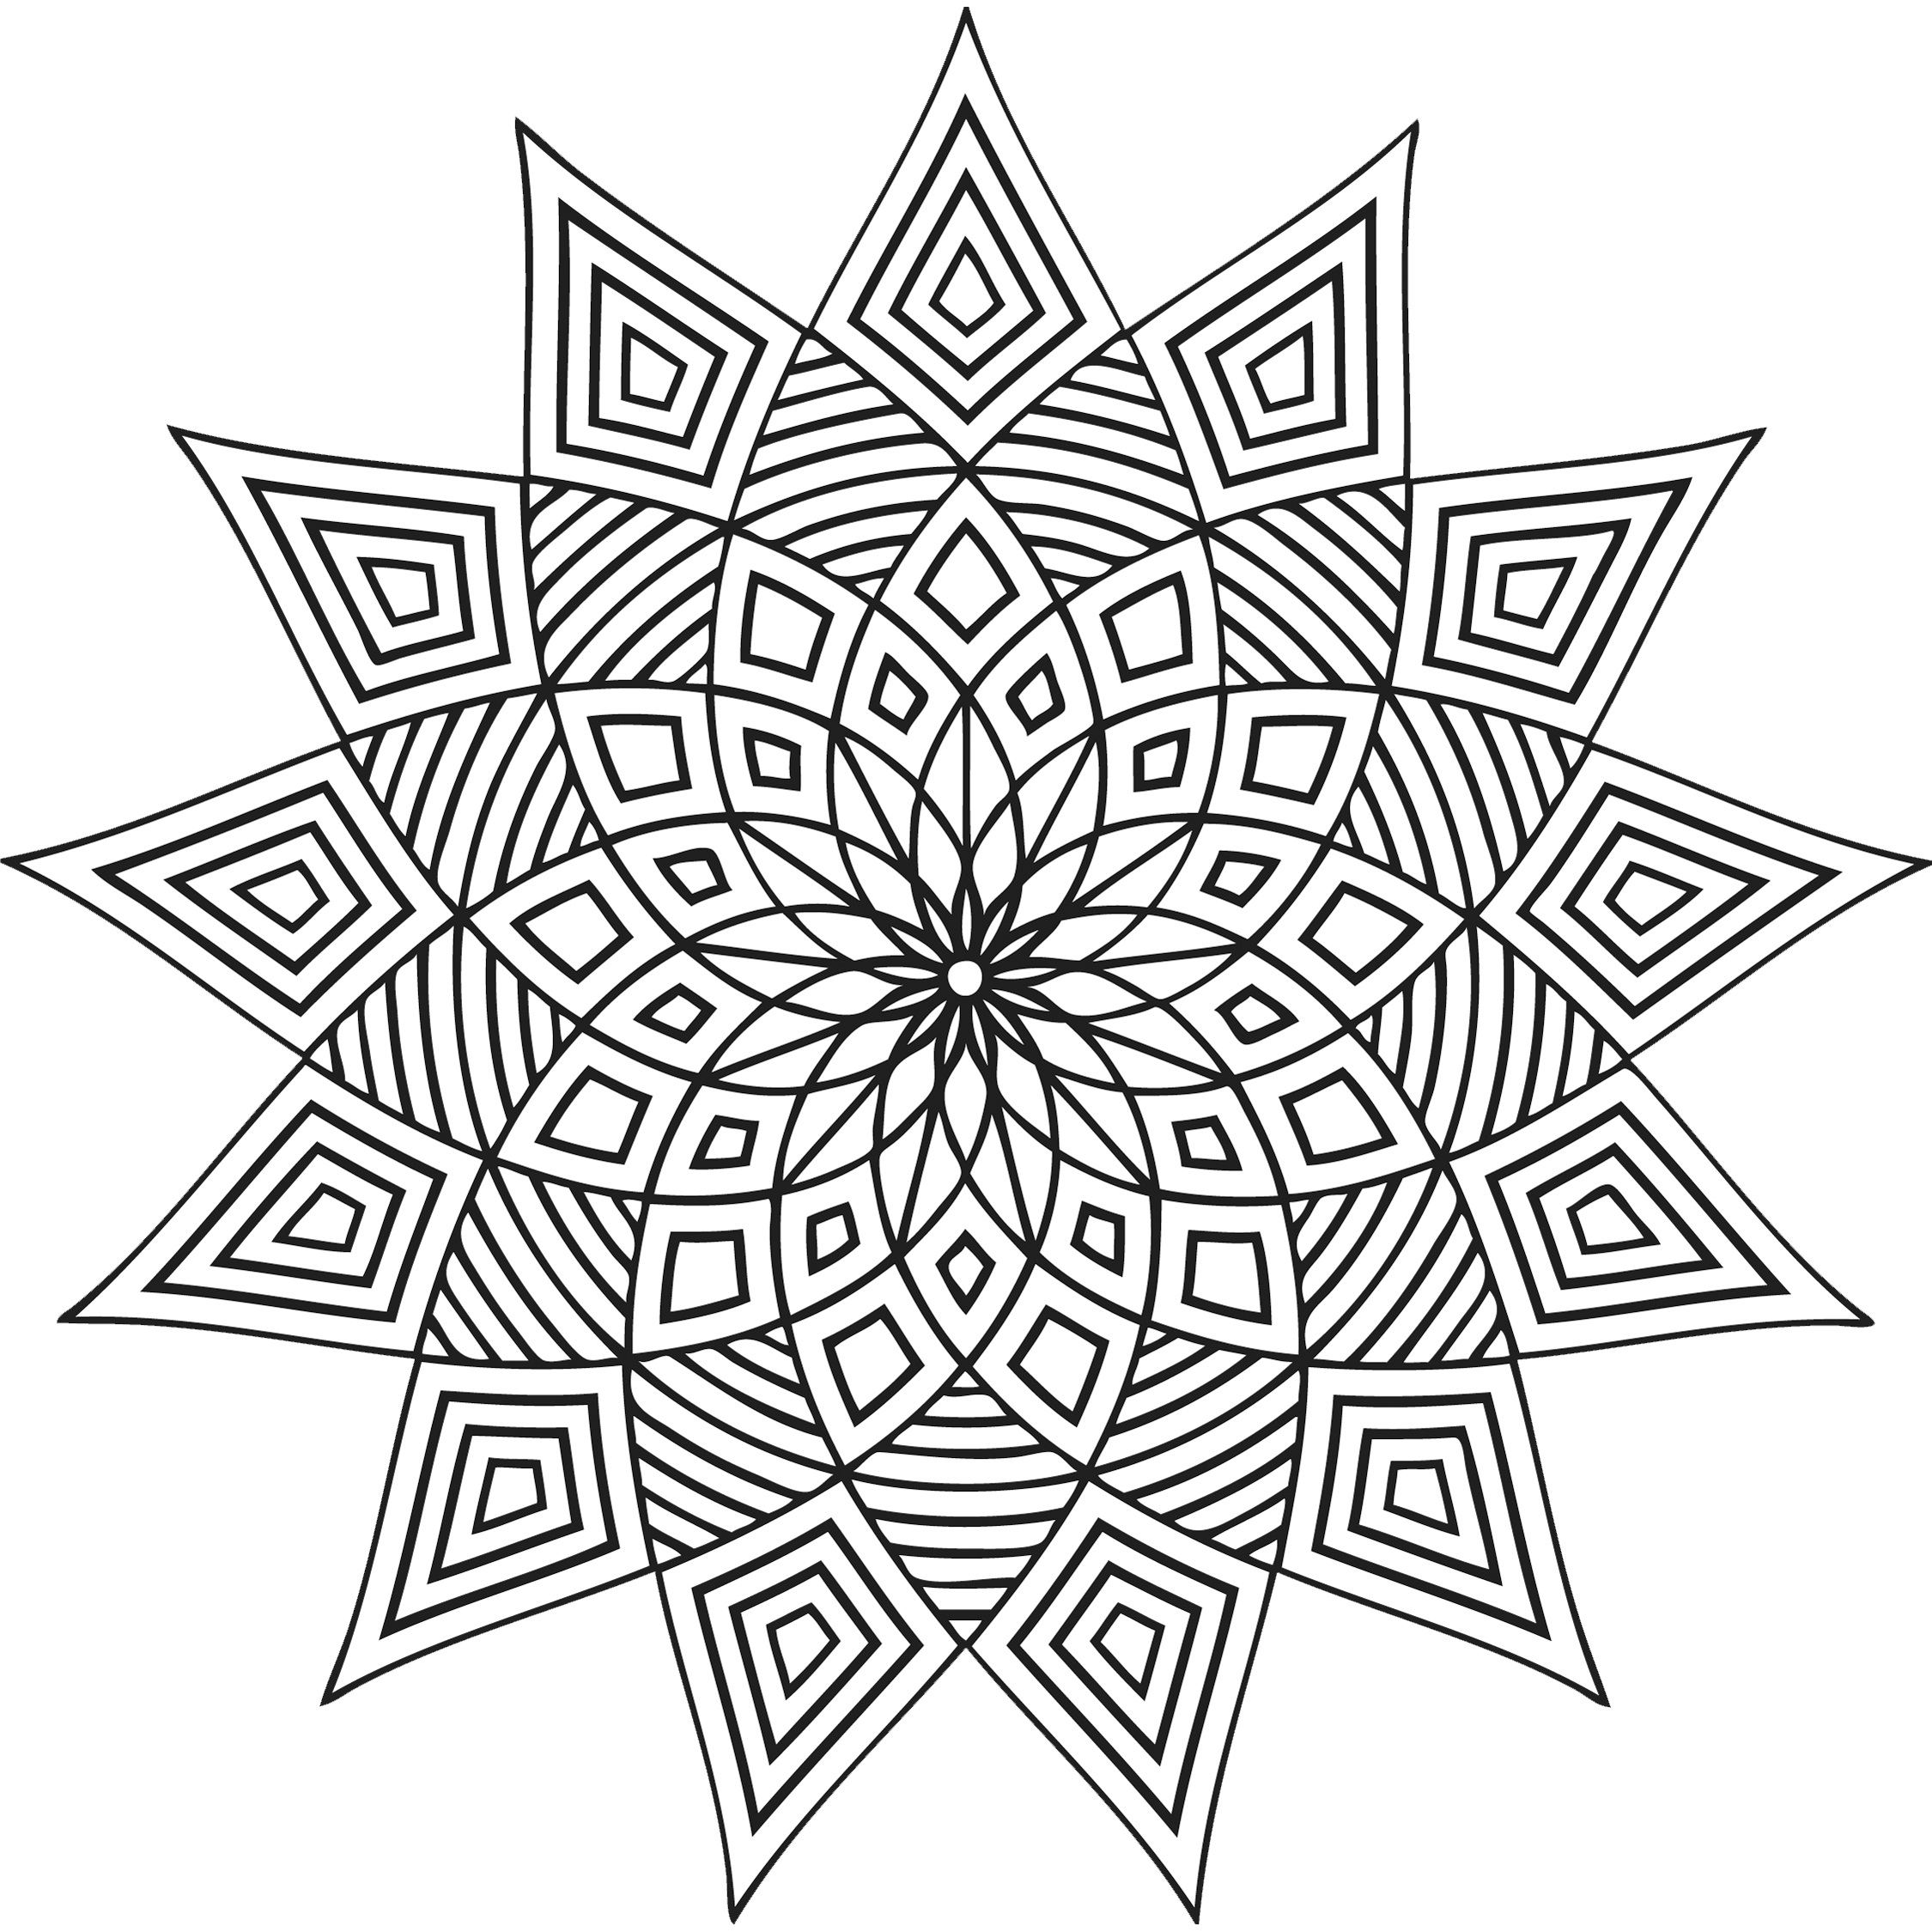 geometric design coloring pages - Design Coloring Pages